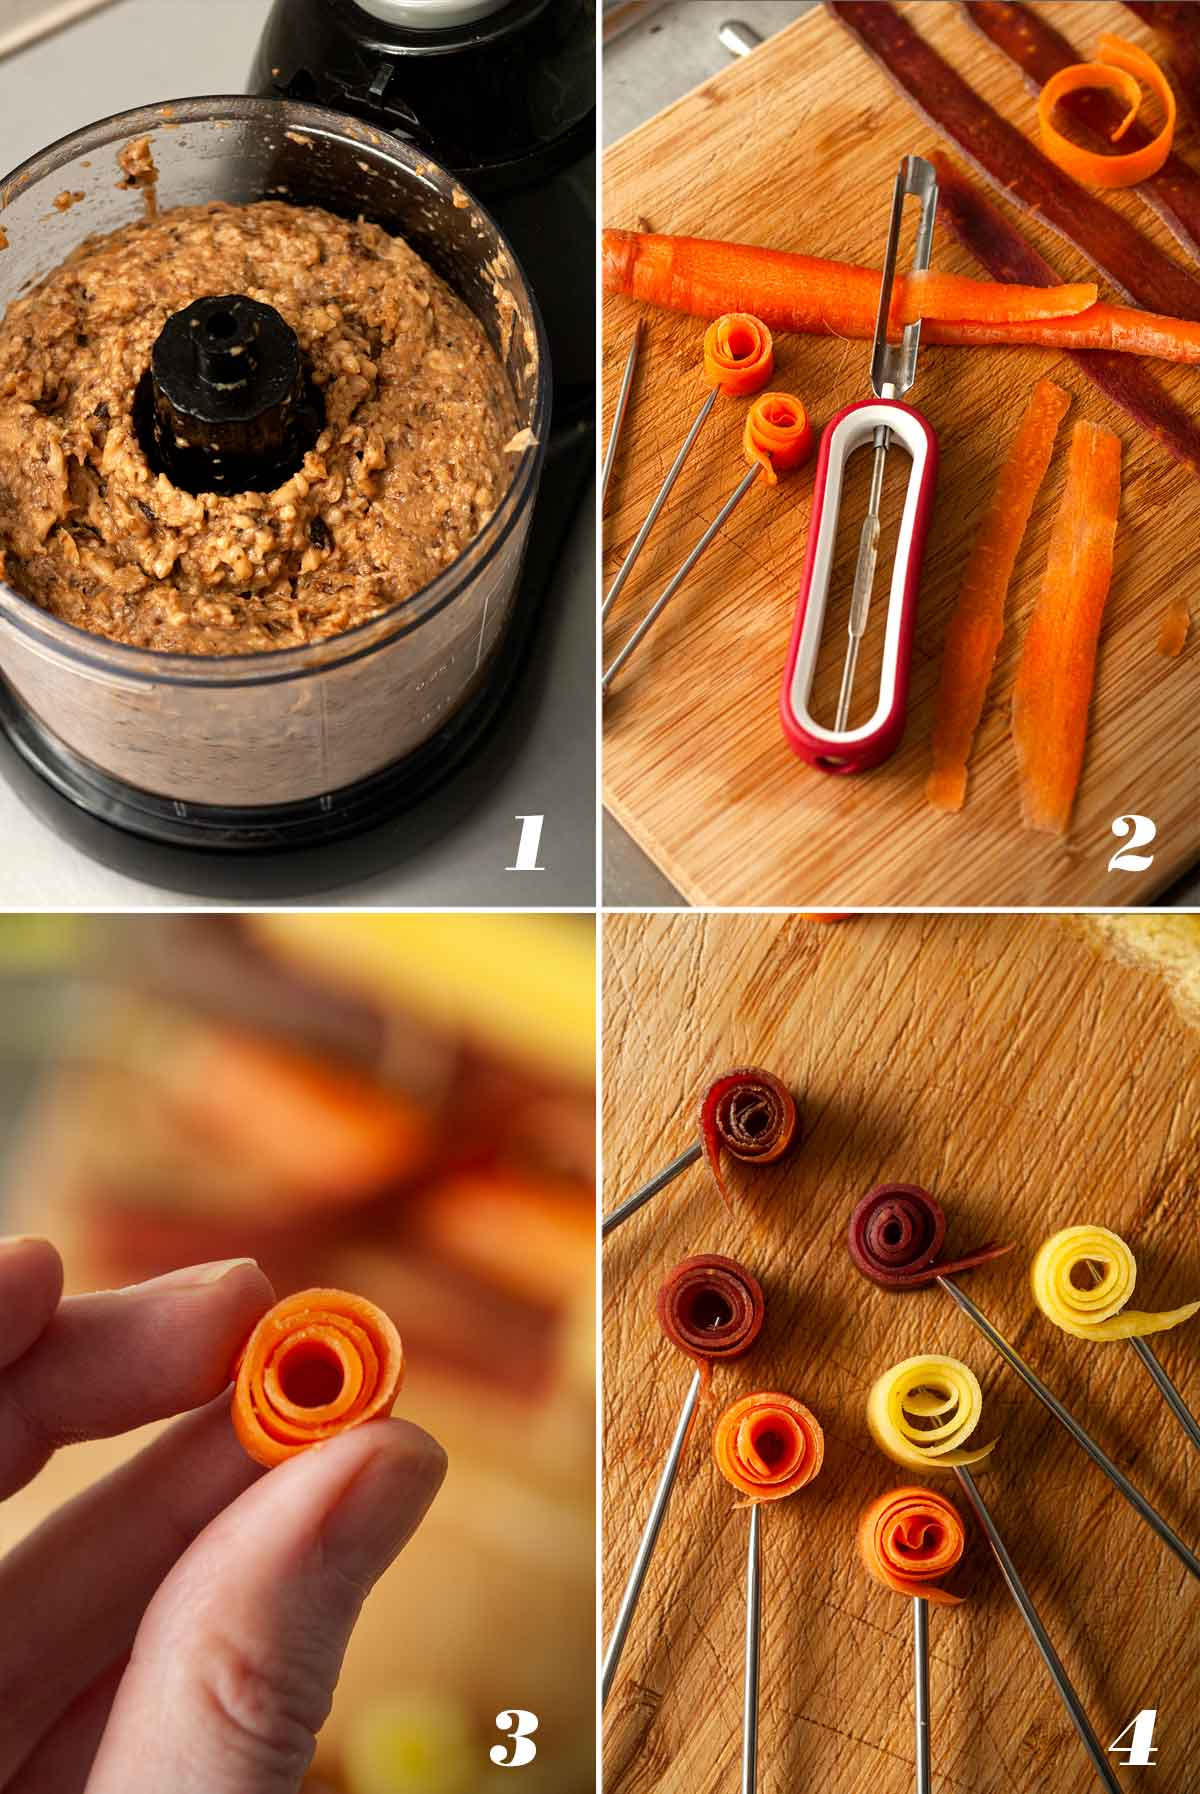 A collage of 4 images showing how to make mushroom pâté and carrot roses.